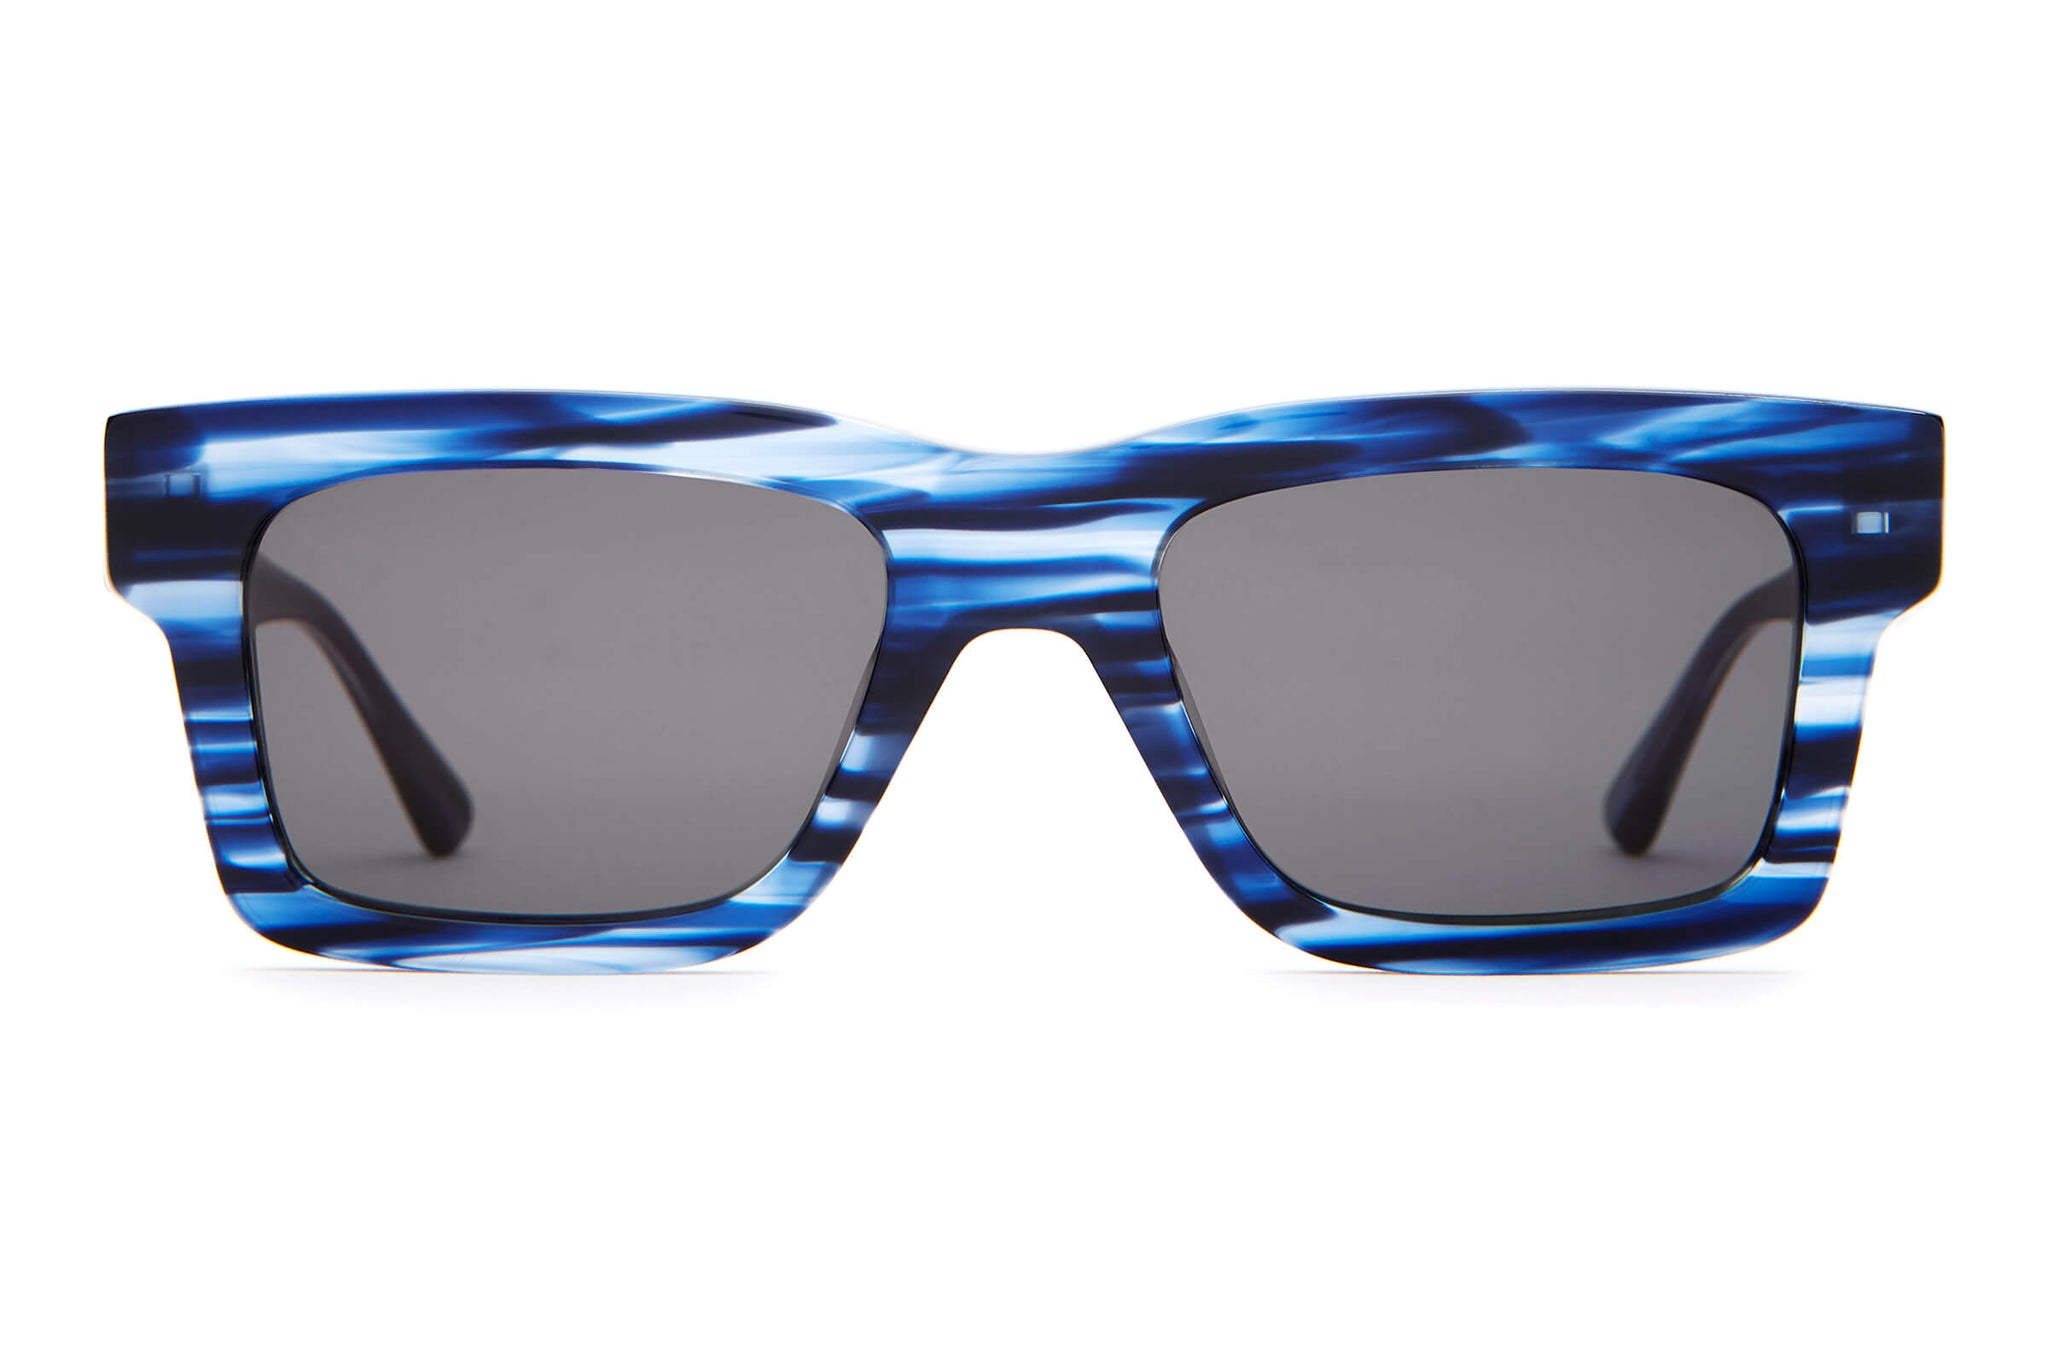 The Speedway - Venice Blue - / Grey - Sunglasses